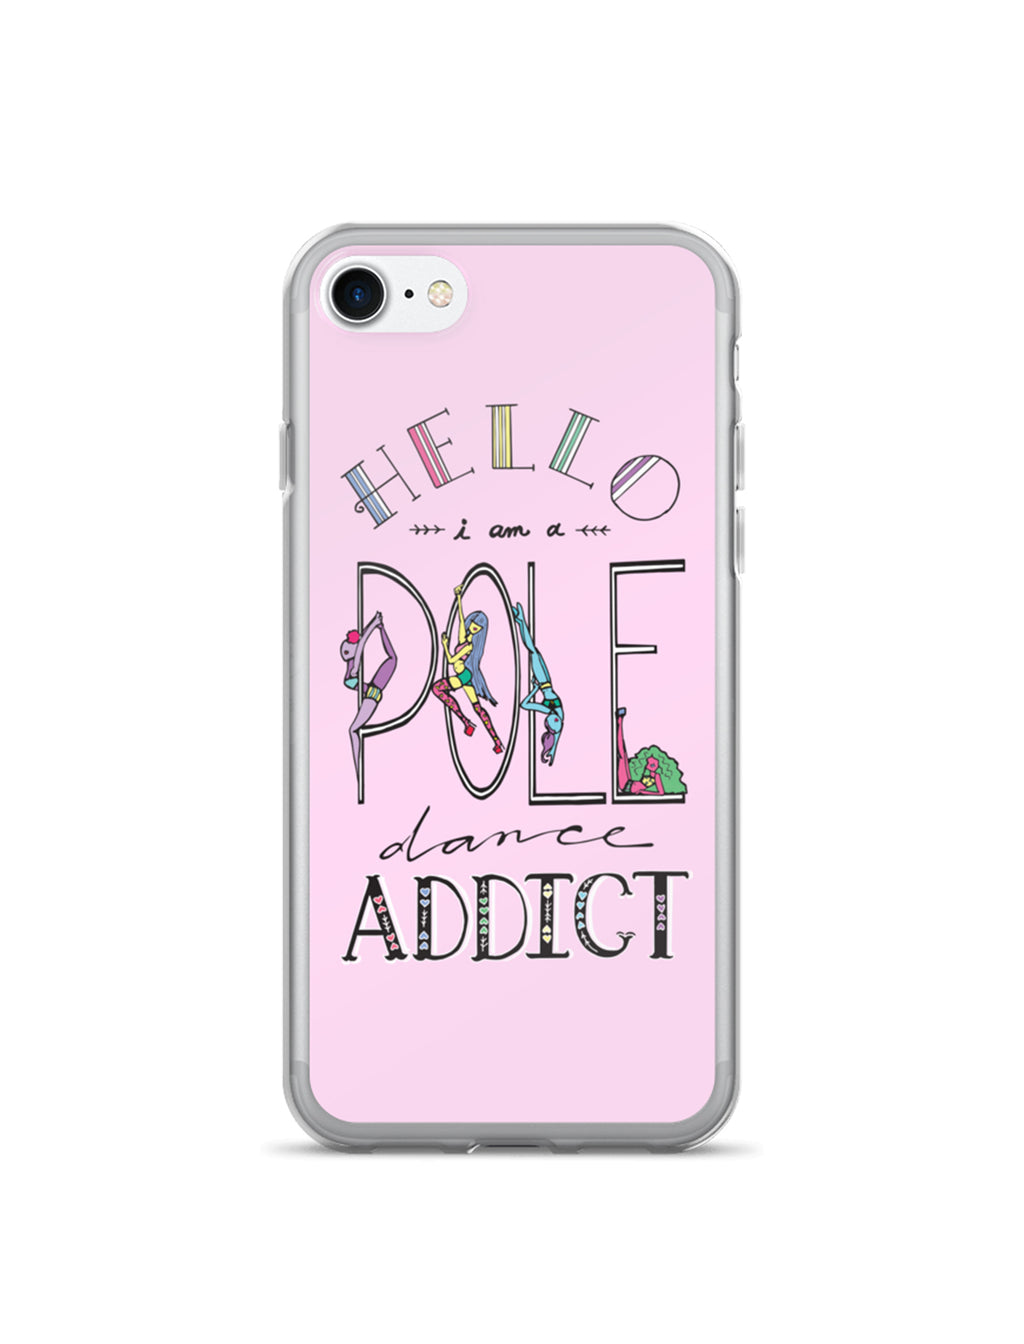 Pole Dancing Addict Phone Case